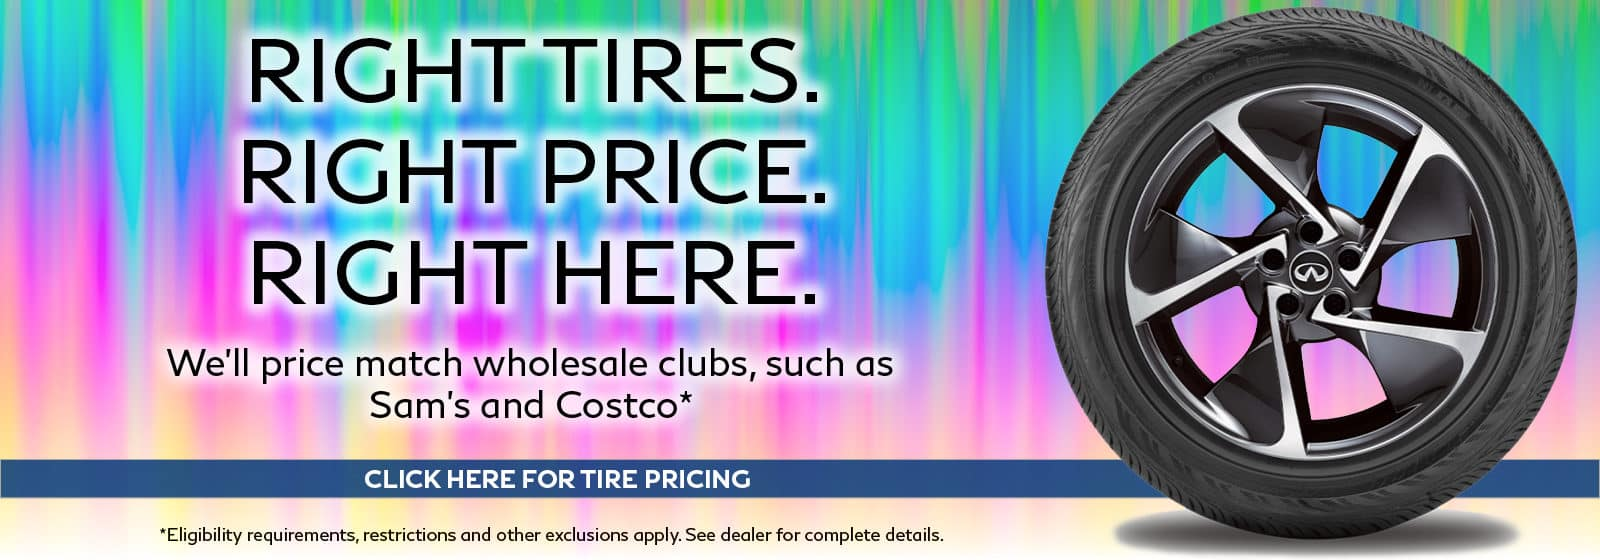 IONA-756 Right Price Tires 1600×560